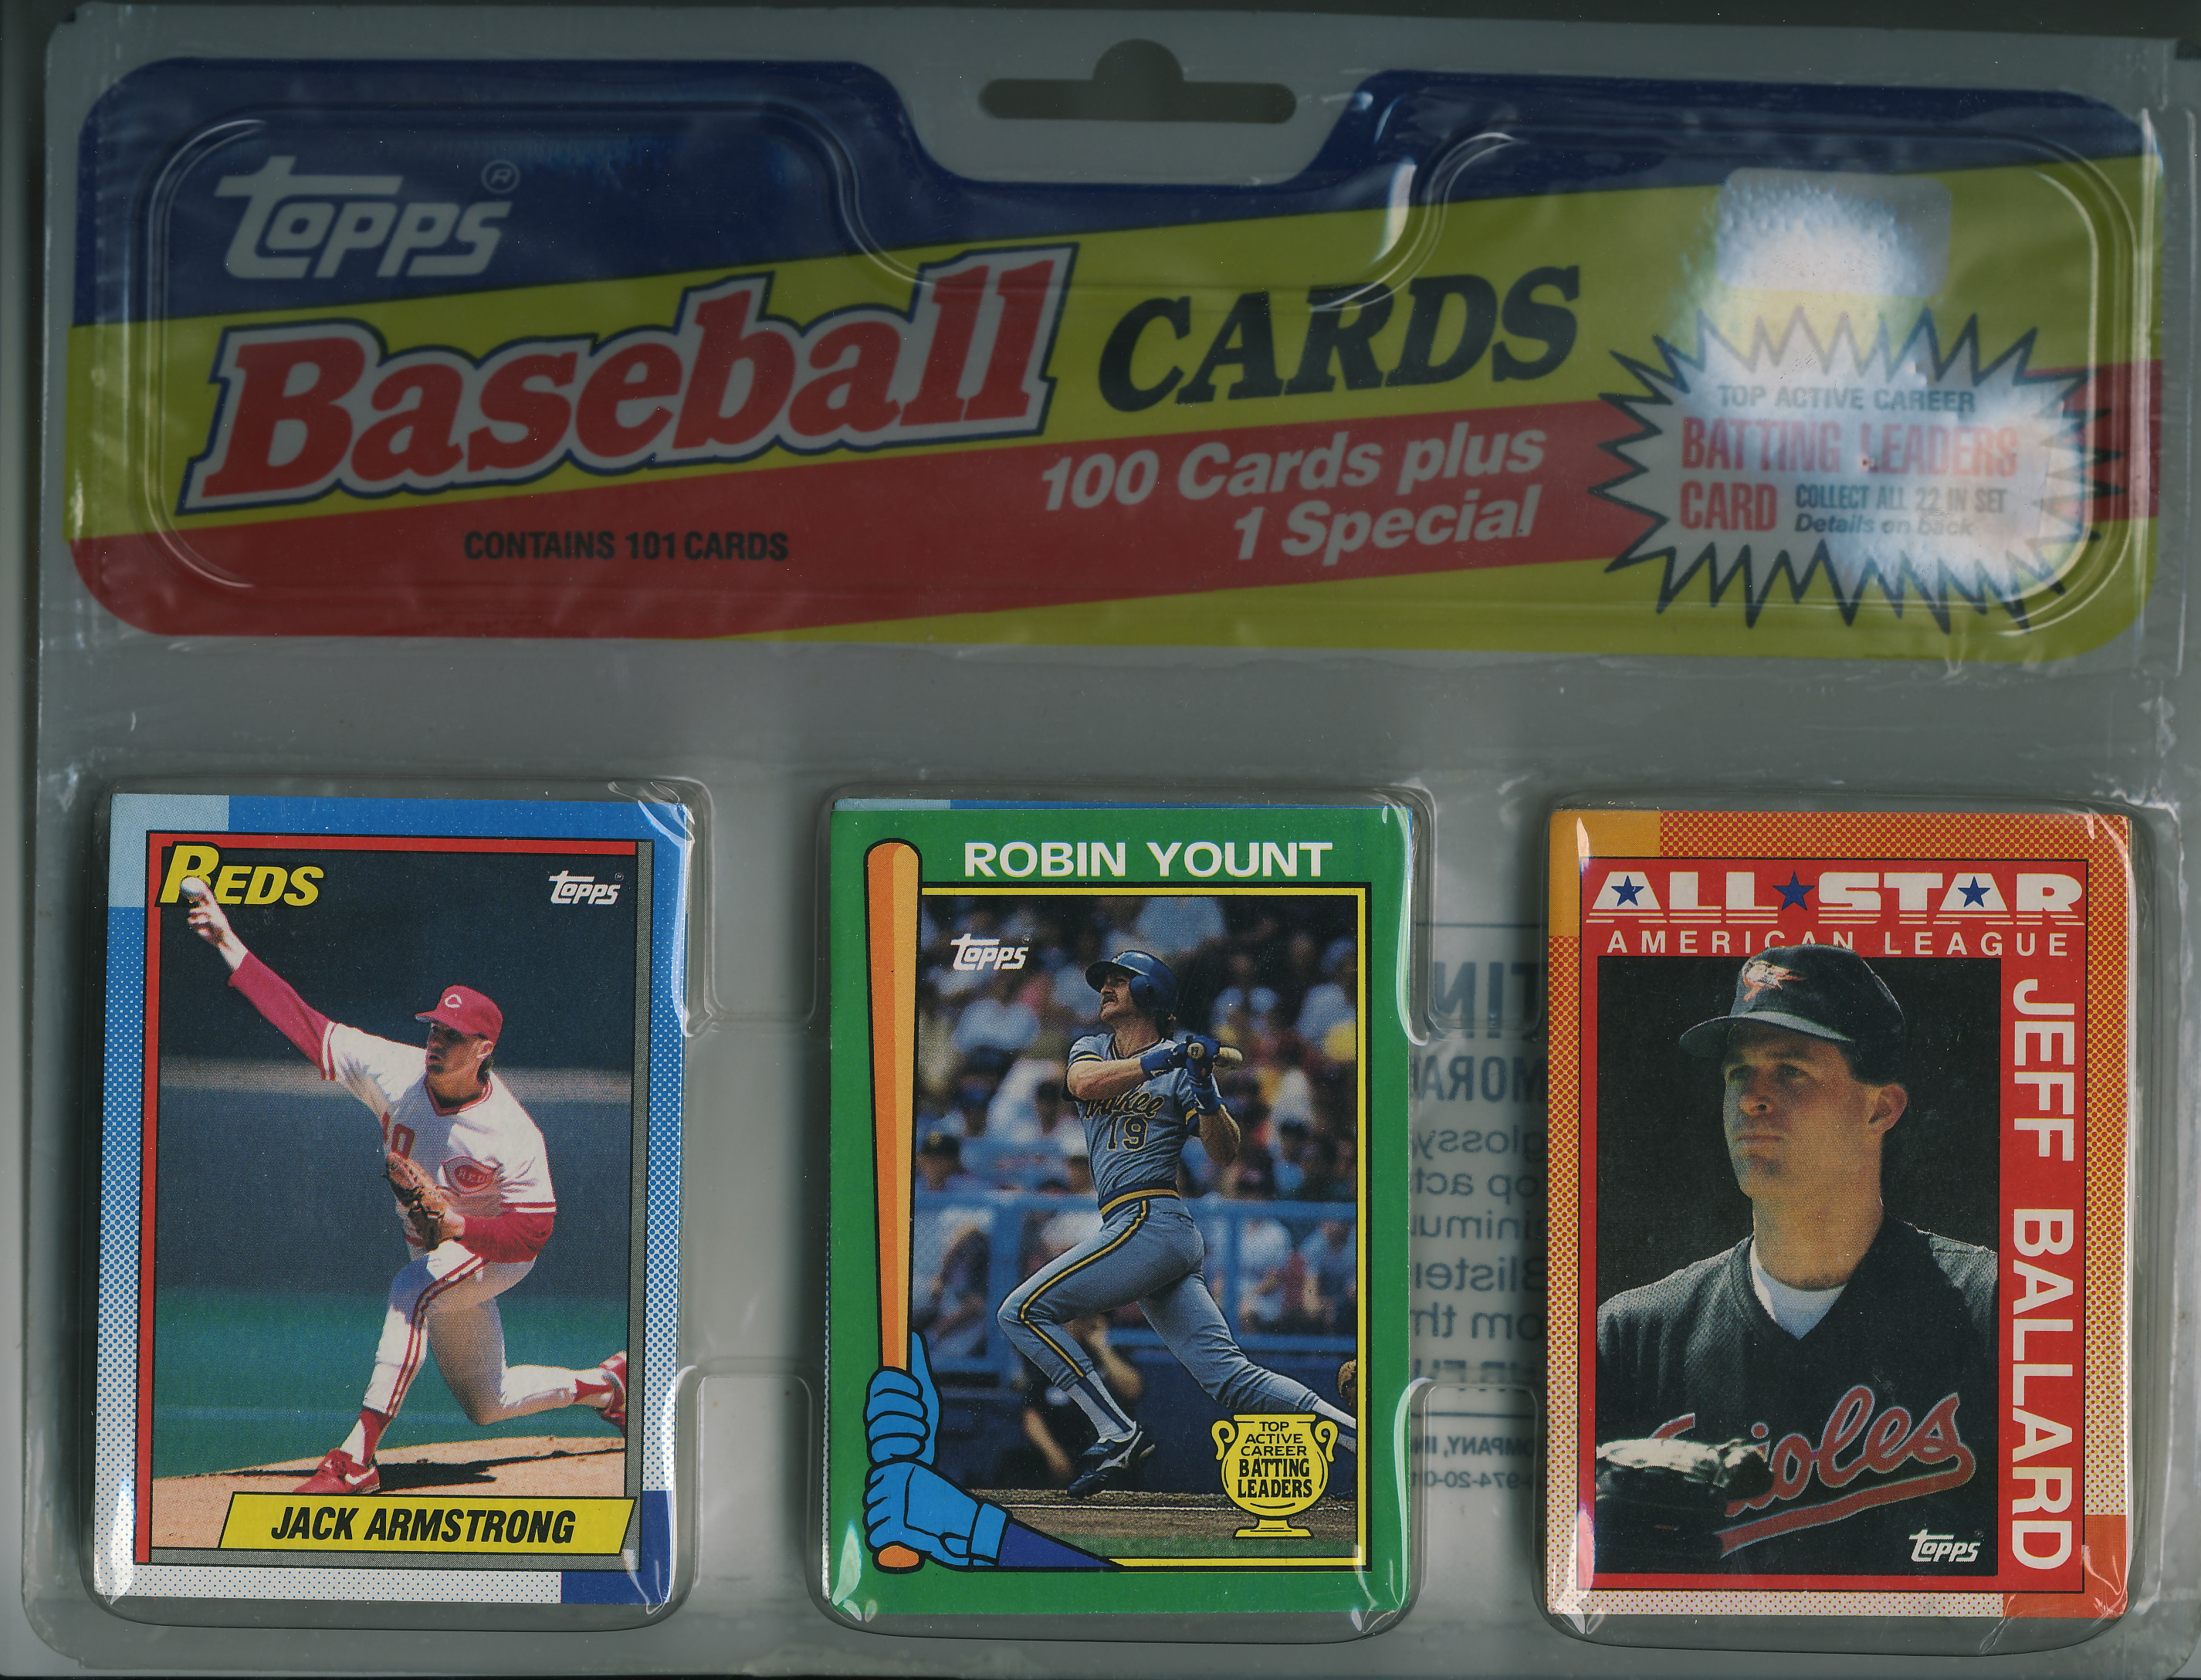 1990 Topps Blister Packs Lifetime Topps Project